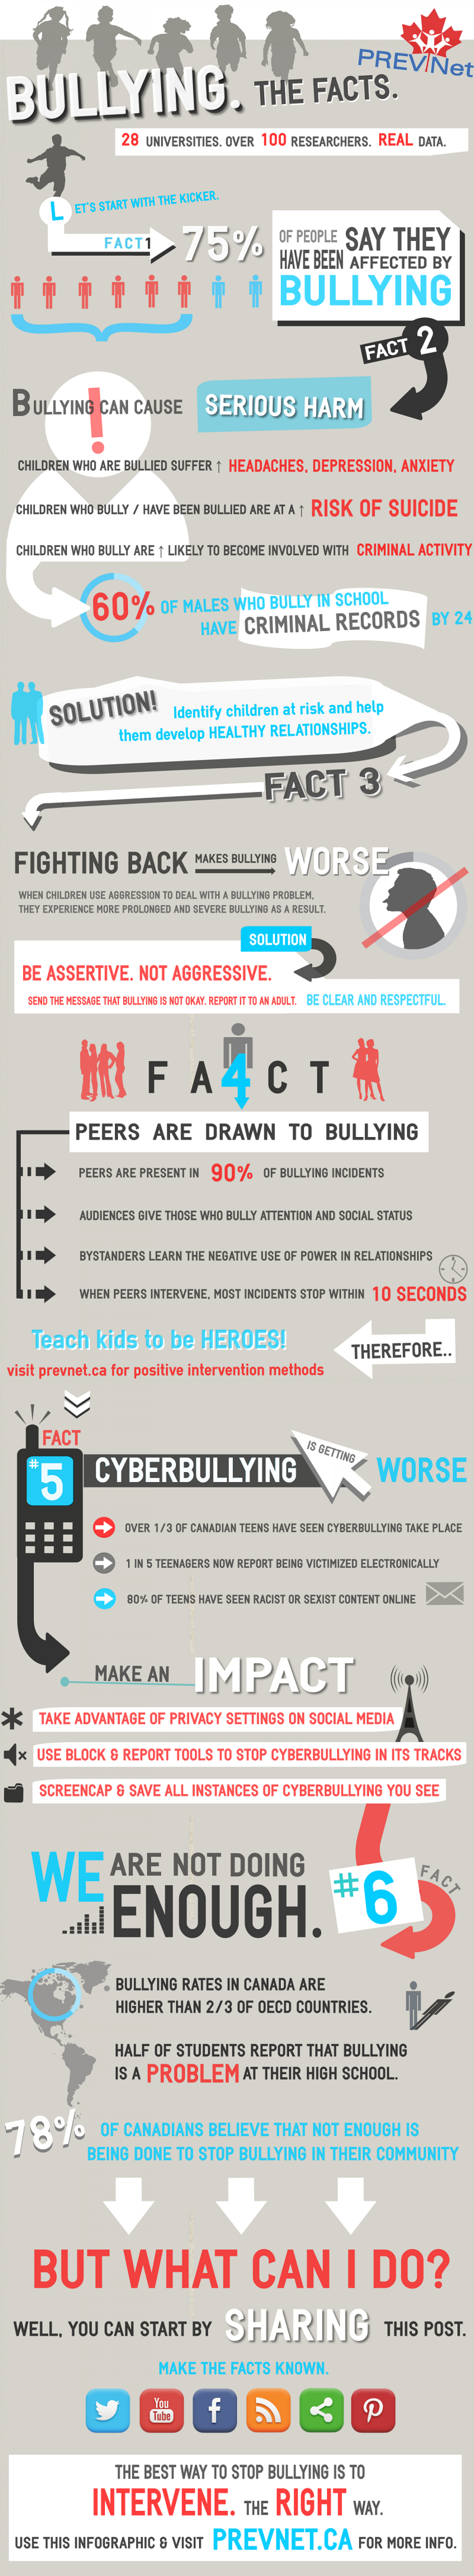 Bullying: The Facts Infographic